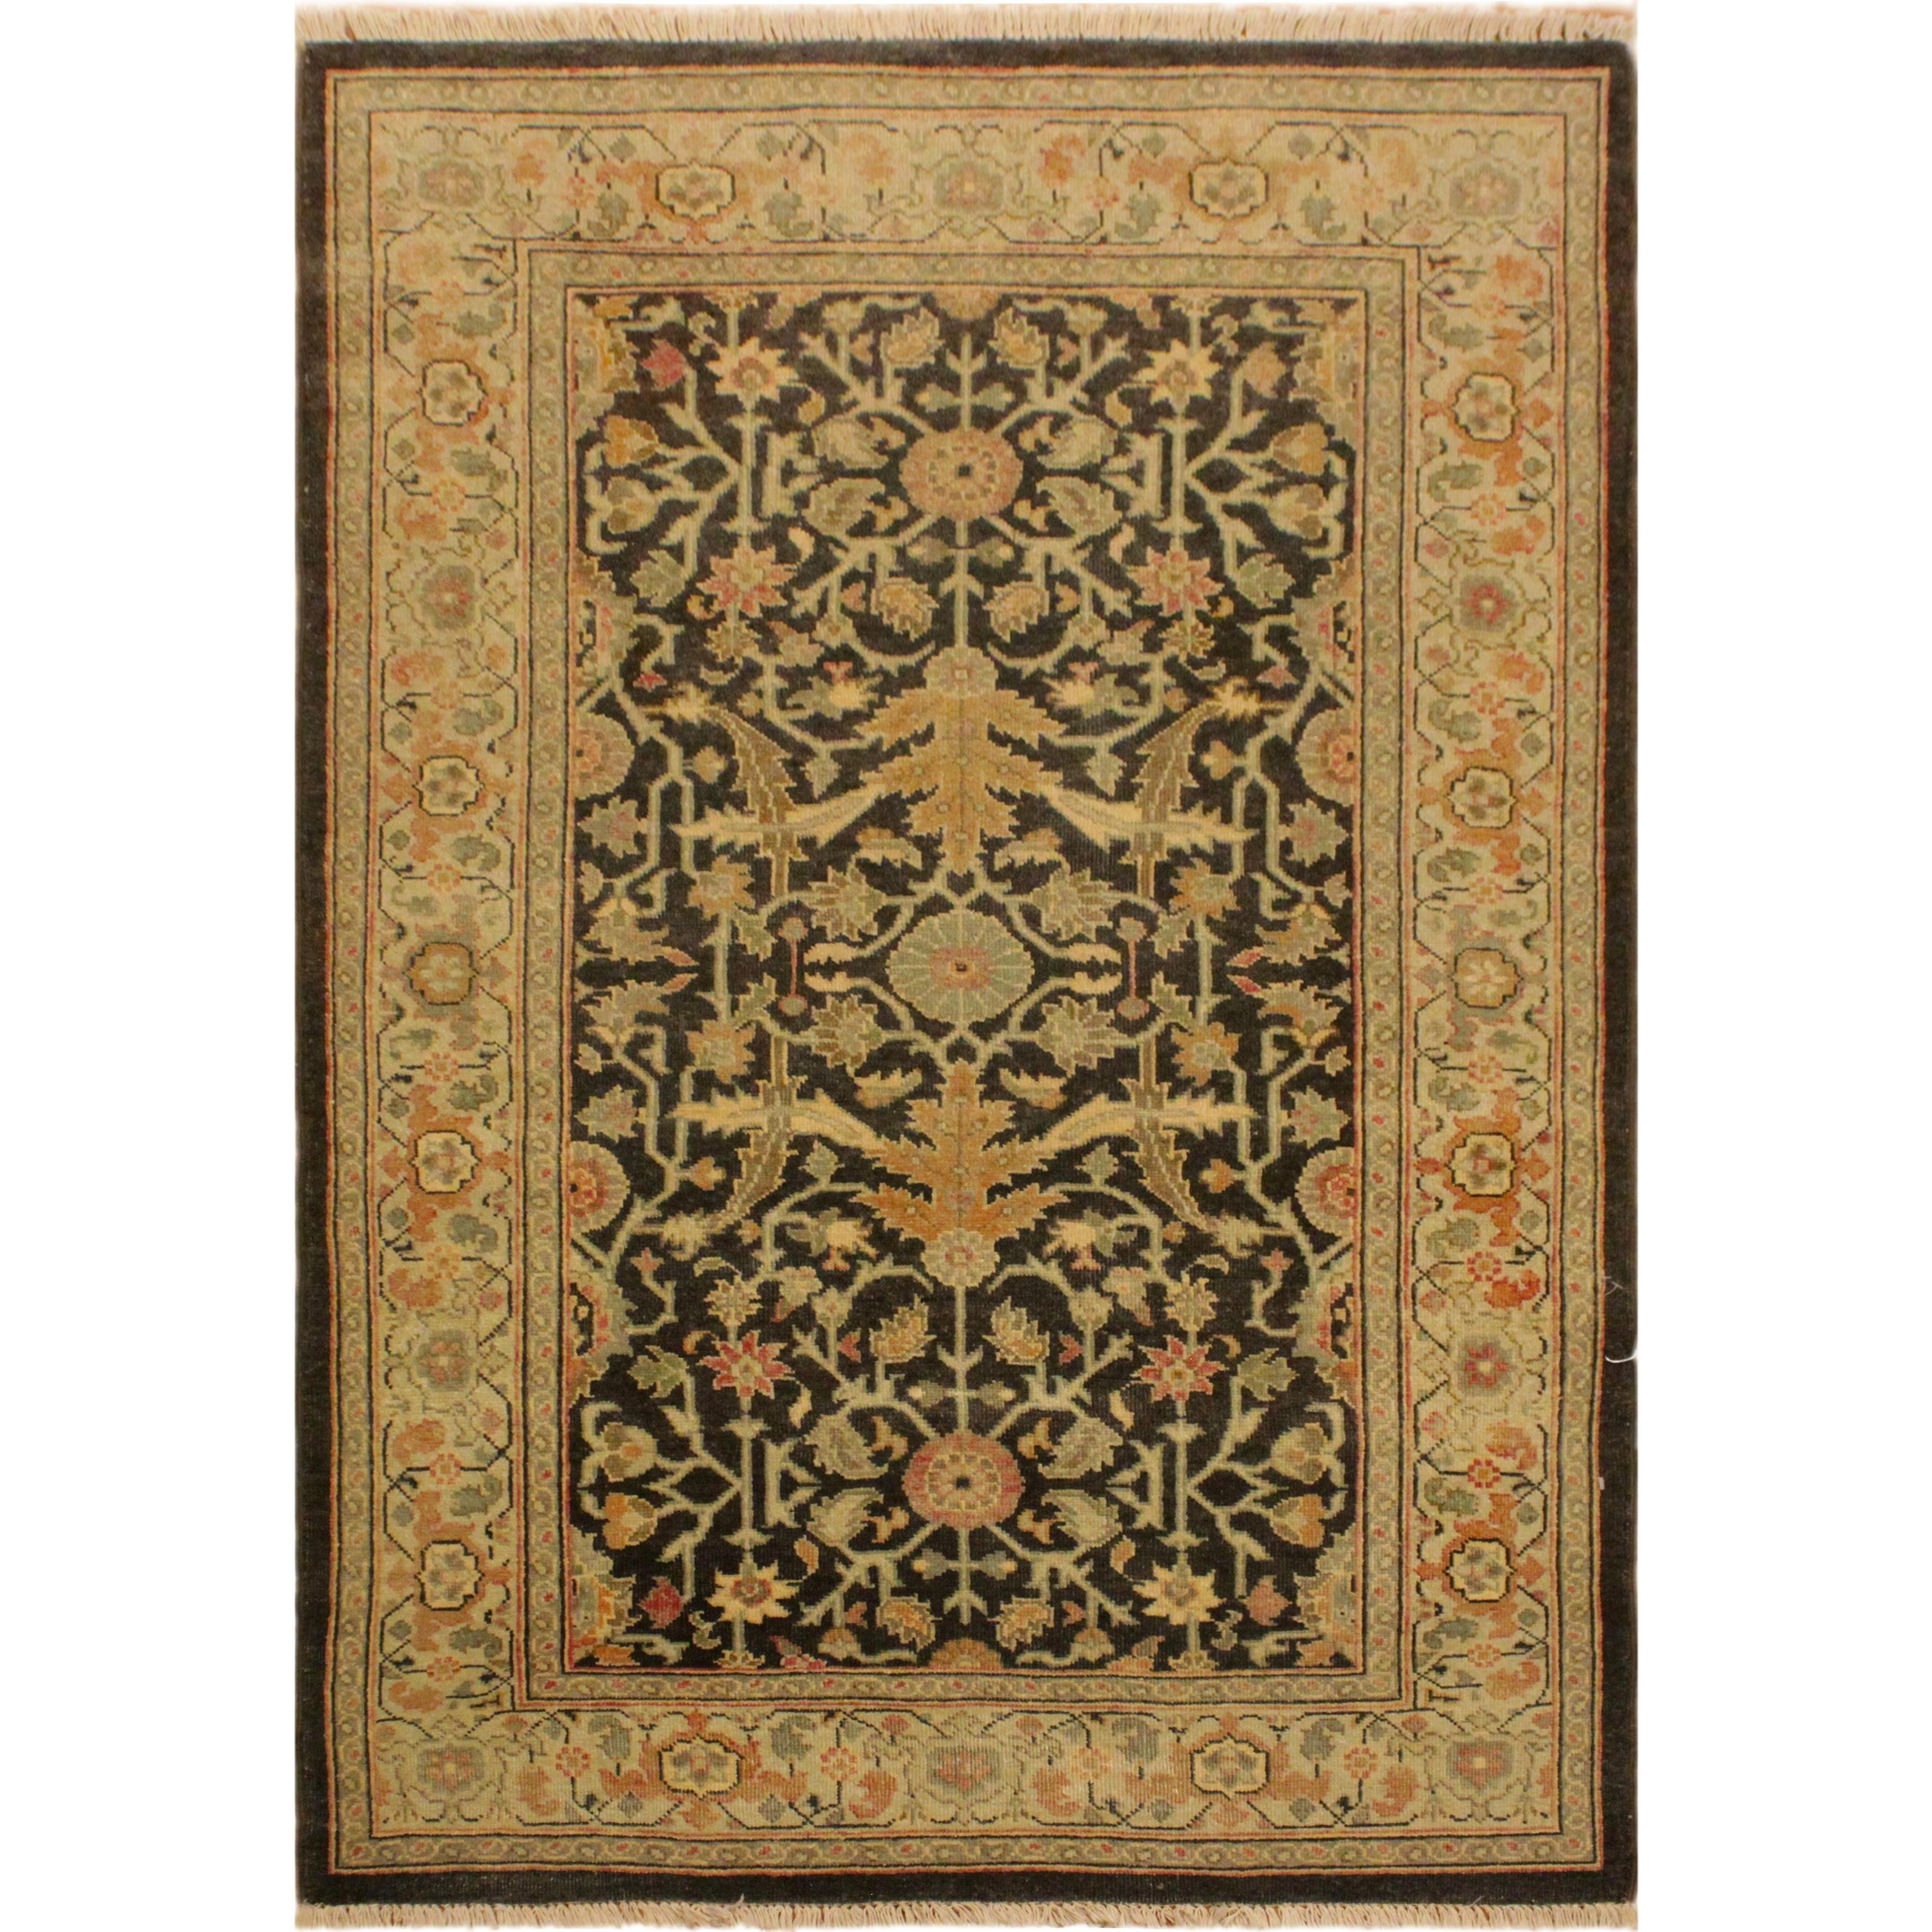 Antique Vintage Low Pile Sharonda Green Tan Wool Area Rug 3 1 X 4 10 Green 3 1 X 4 10 Arshs Fine Rugs 3 X 5 Wool Area Rugs Area Rugs Rugs